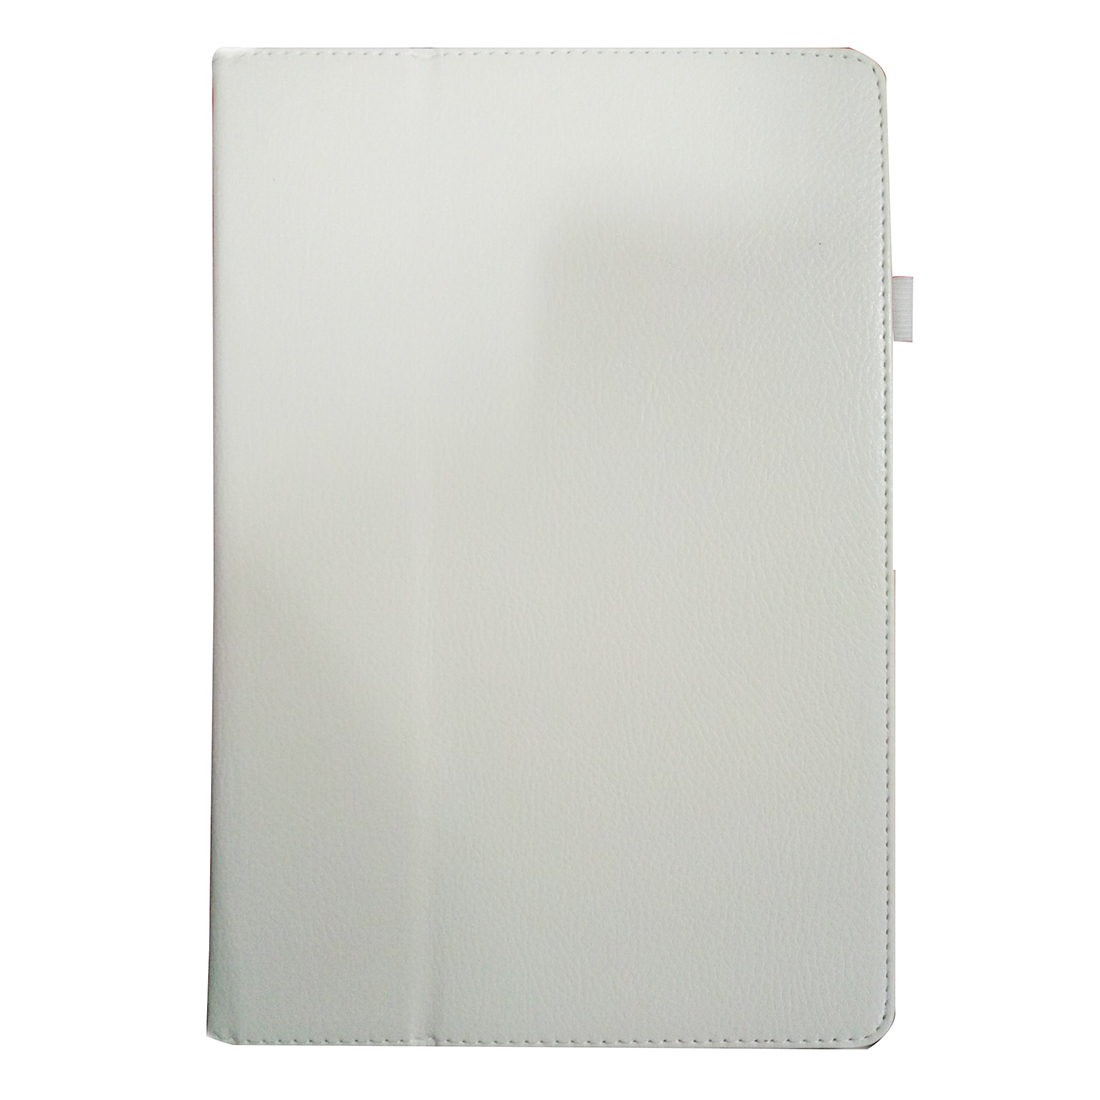 PU Leather Stand Cover Case For ASUS Transformer Book T100HA 10.1 Laptop white планшет asus transformer book t100ha